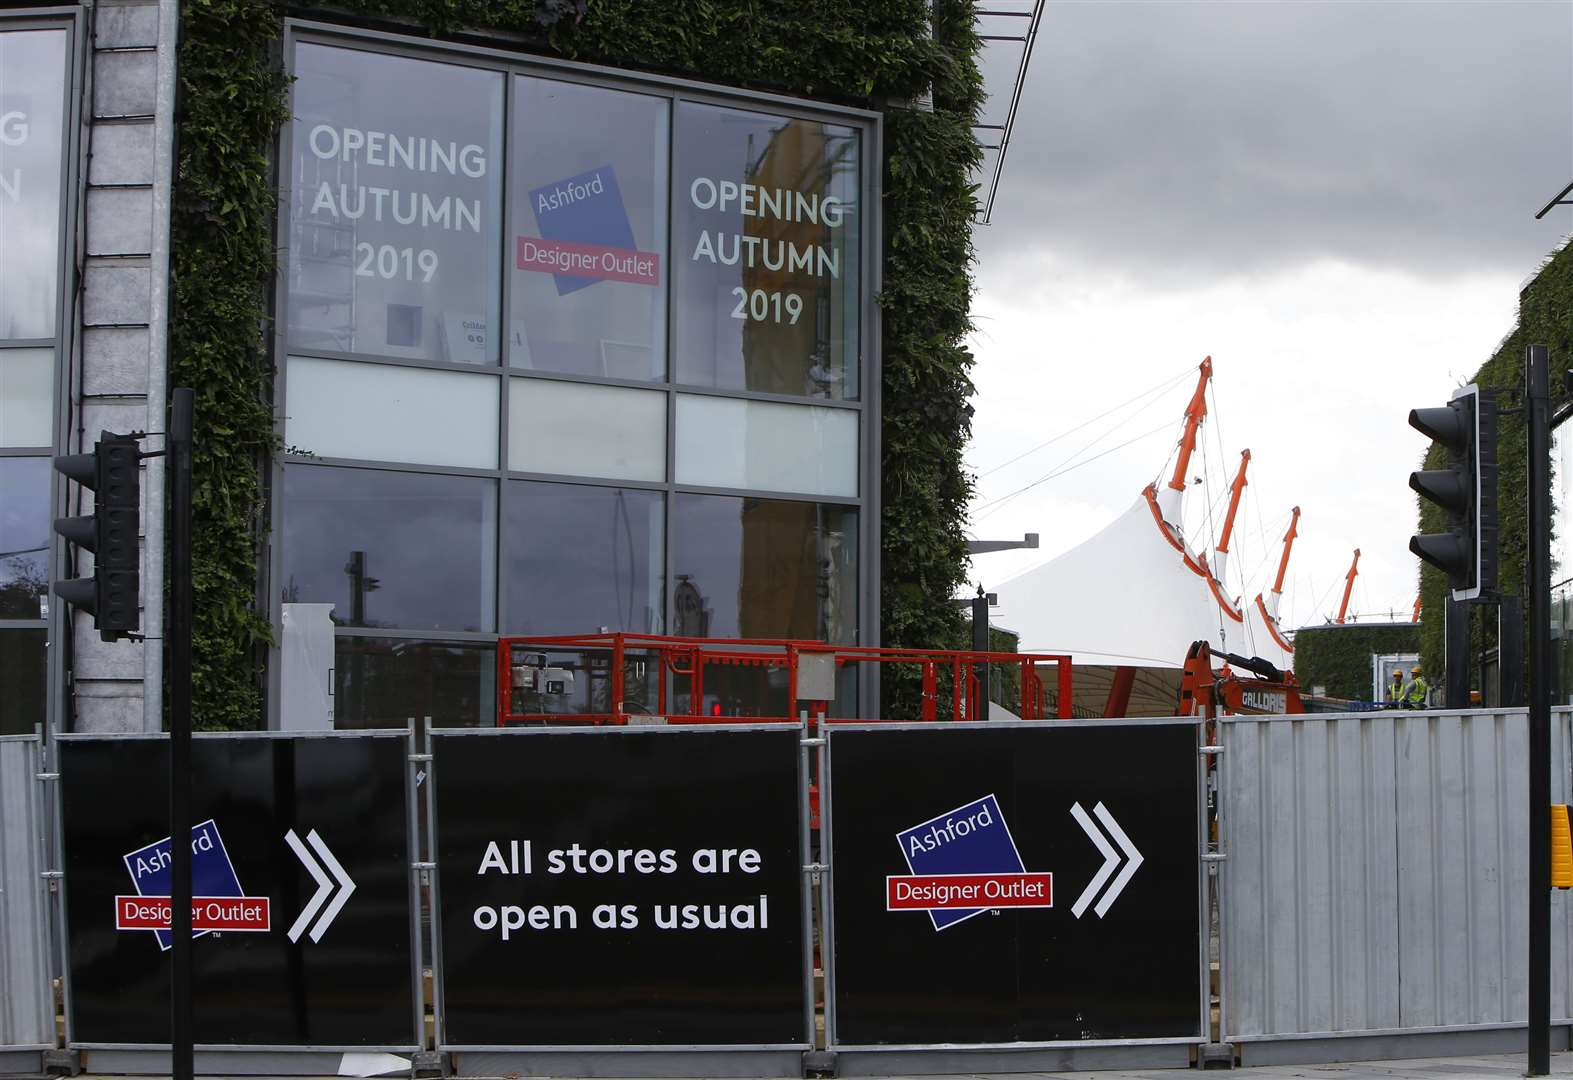 Opening date revealed for Designer Outlet extension